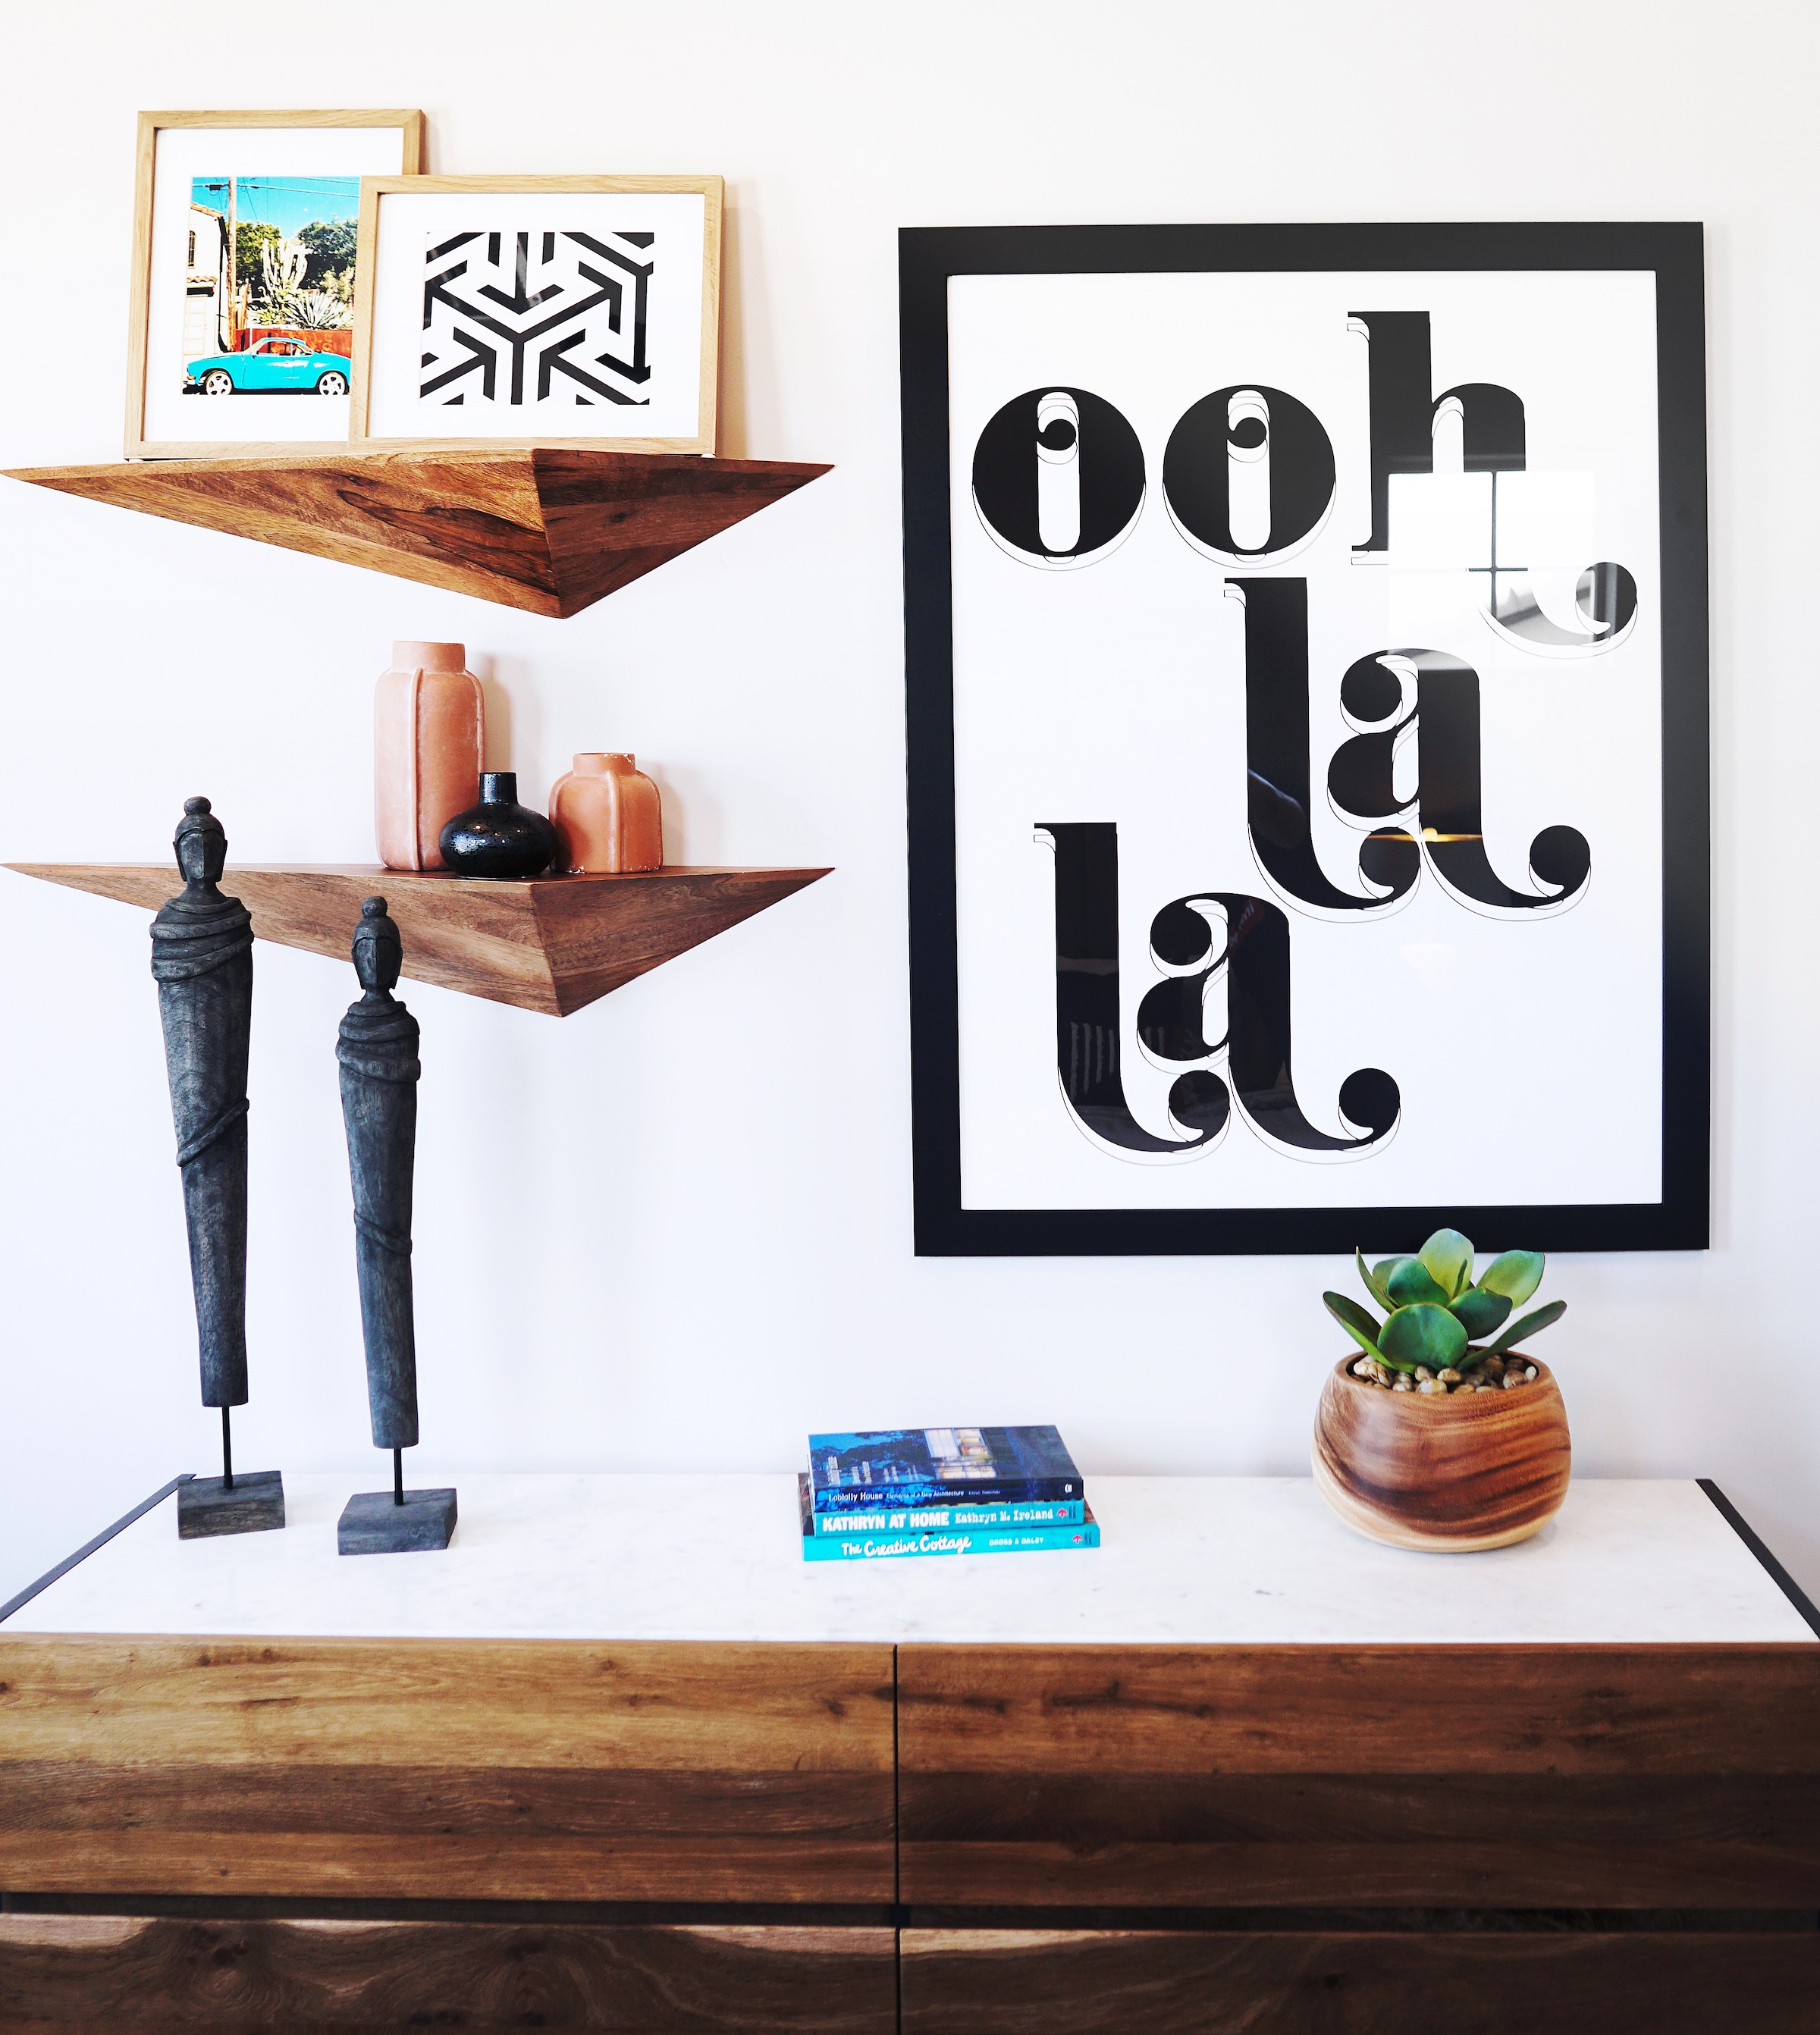 DIY projects for small spaces: add shelves to display your favorite things.